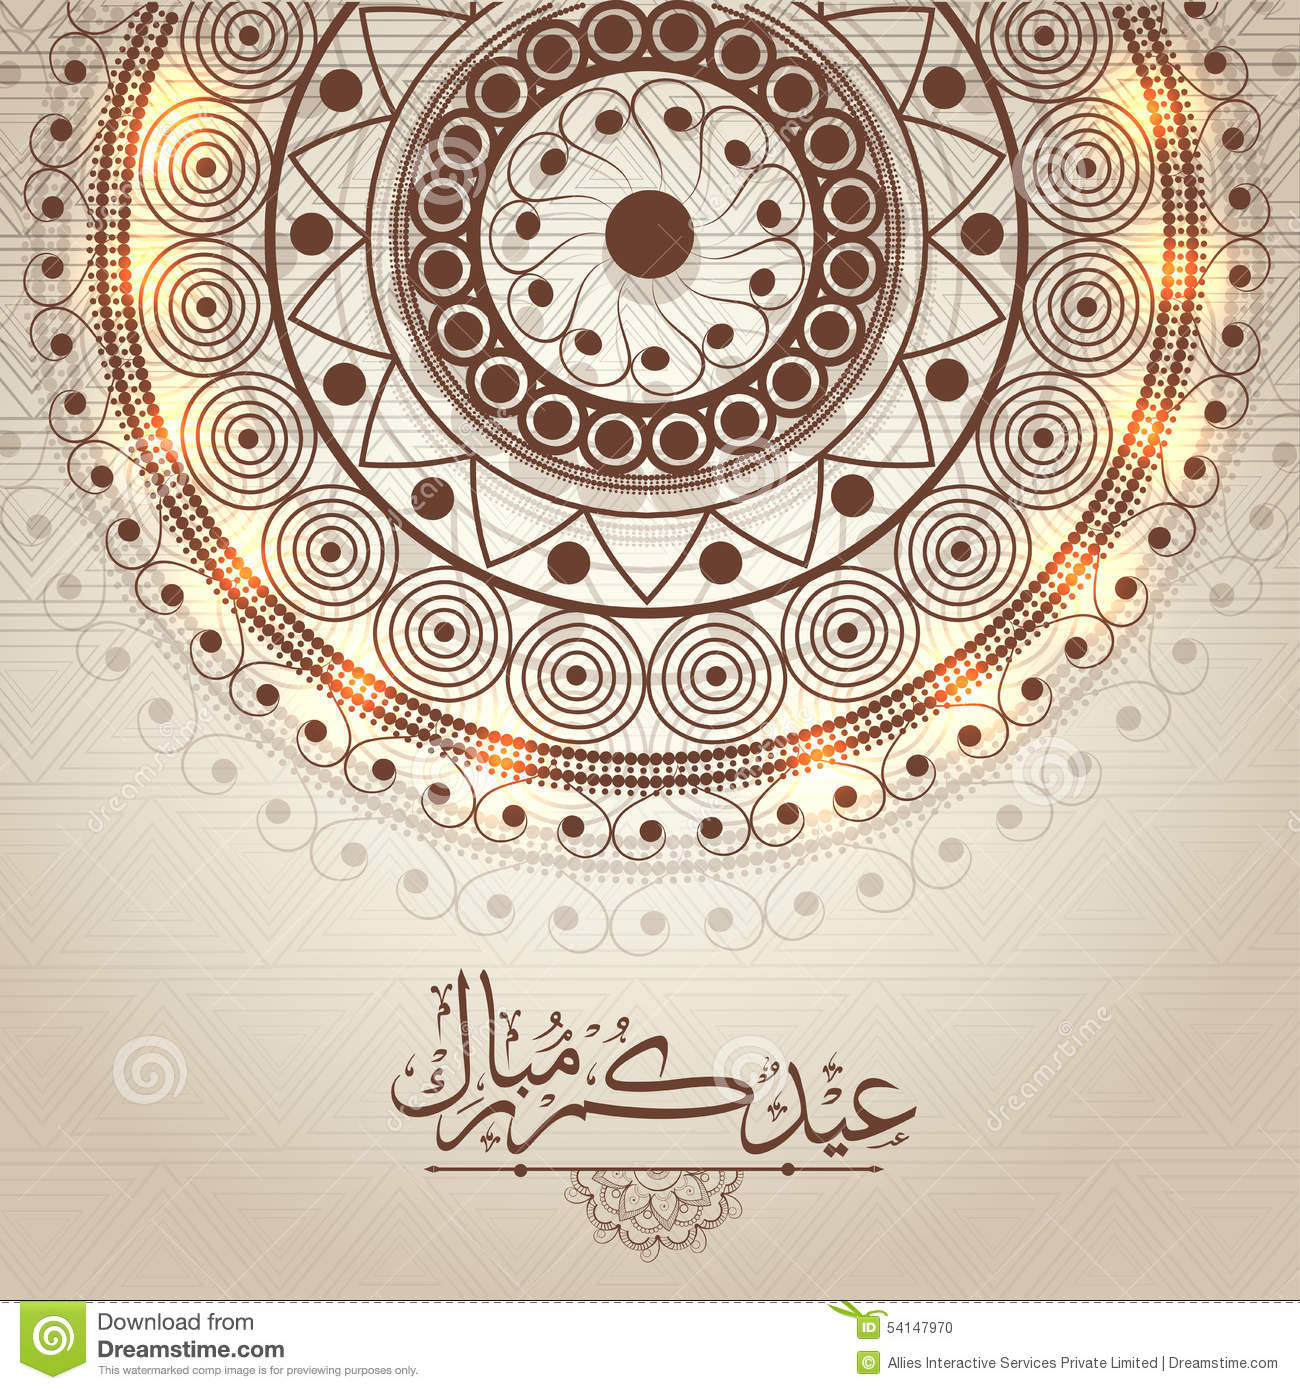 Floral Greeting Card For Islamic Festival Eid Celebration